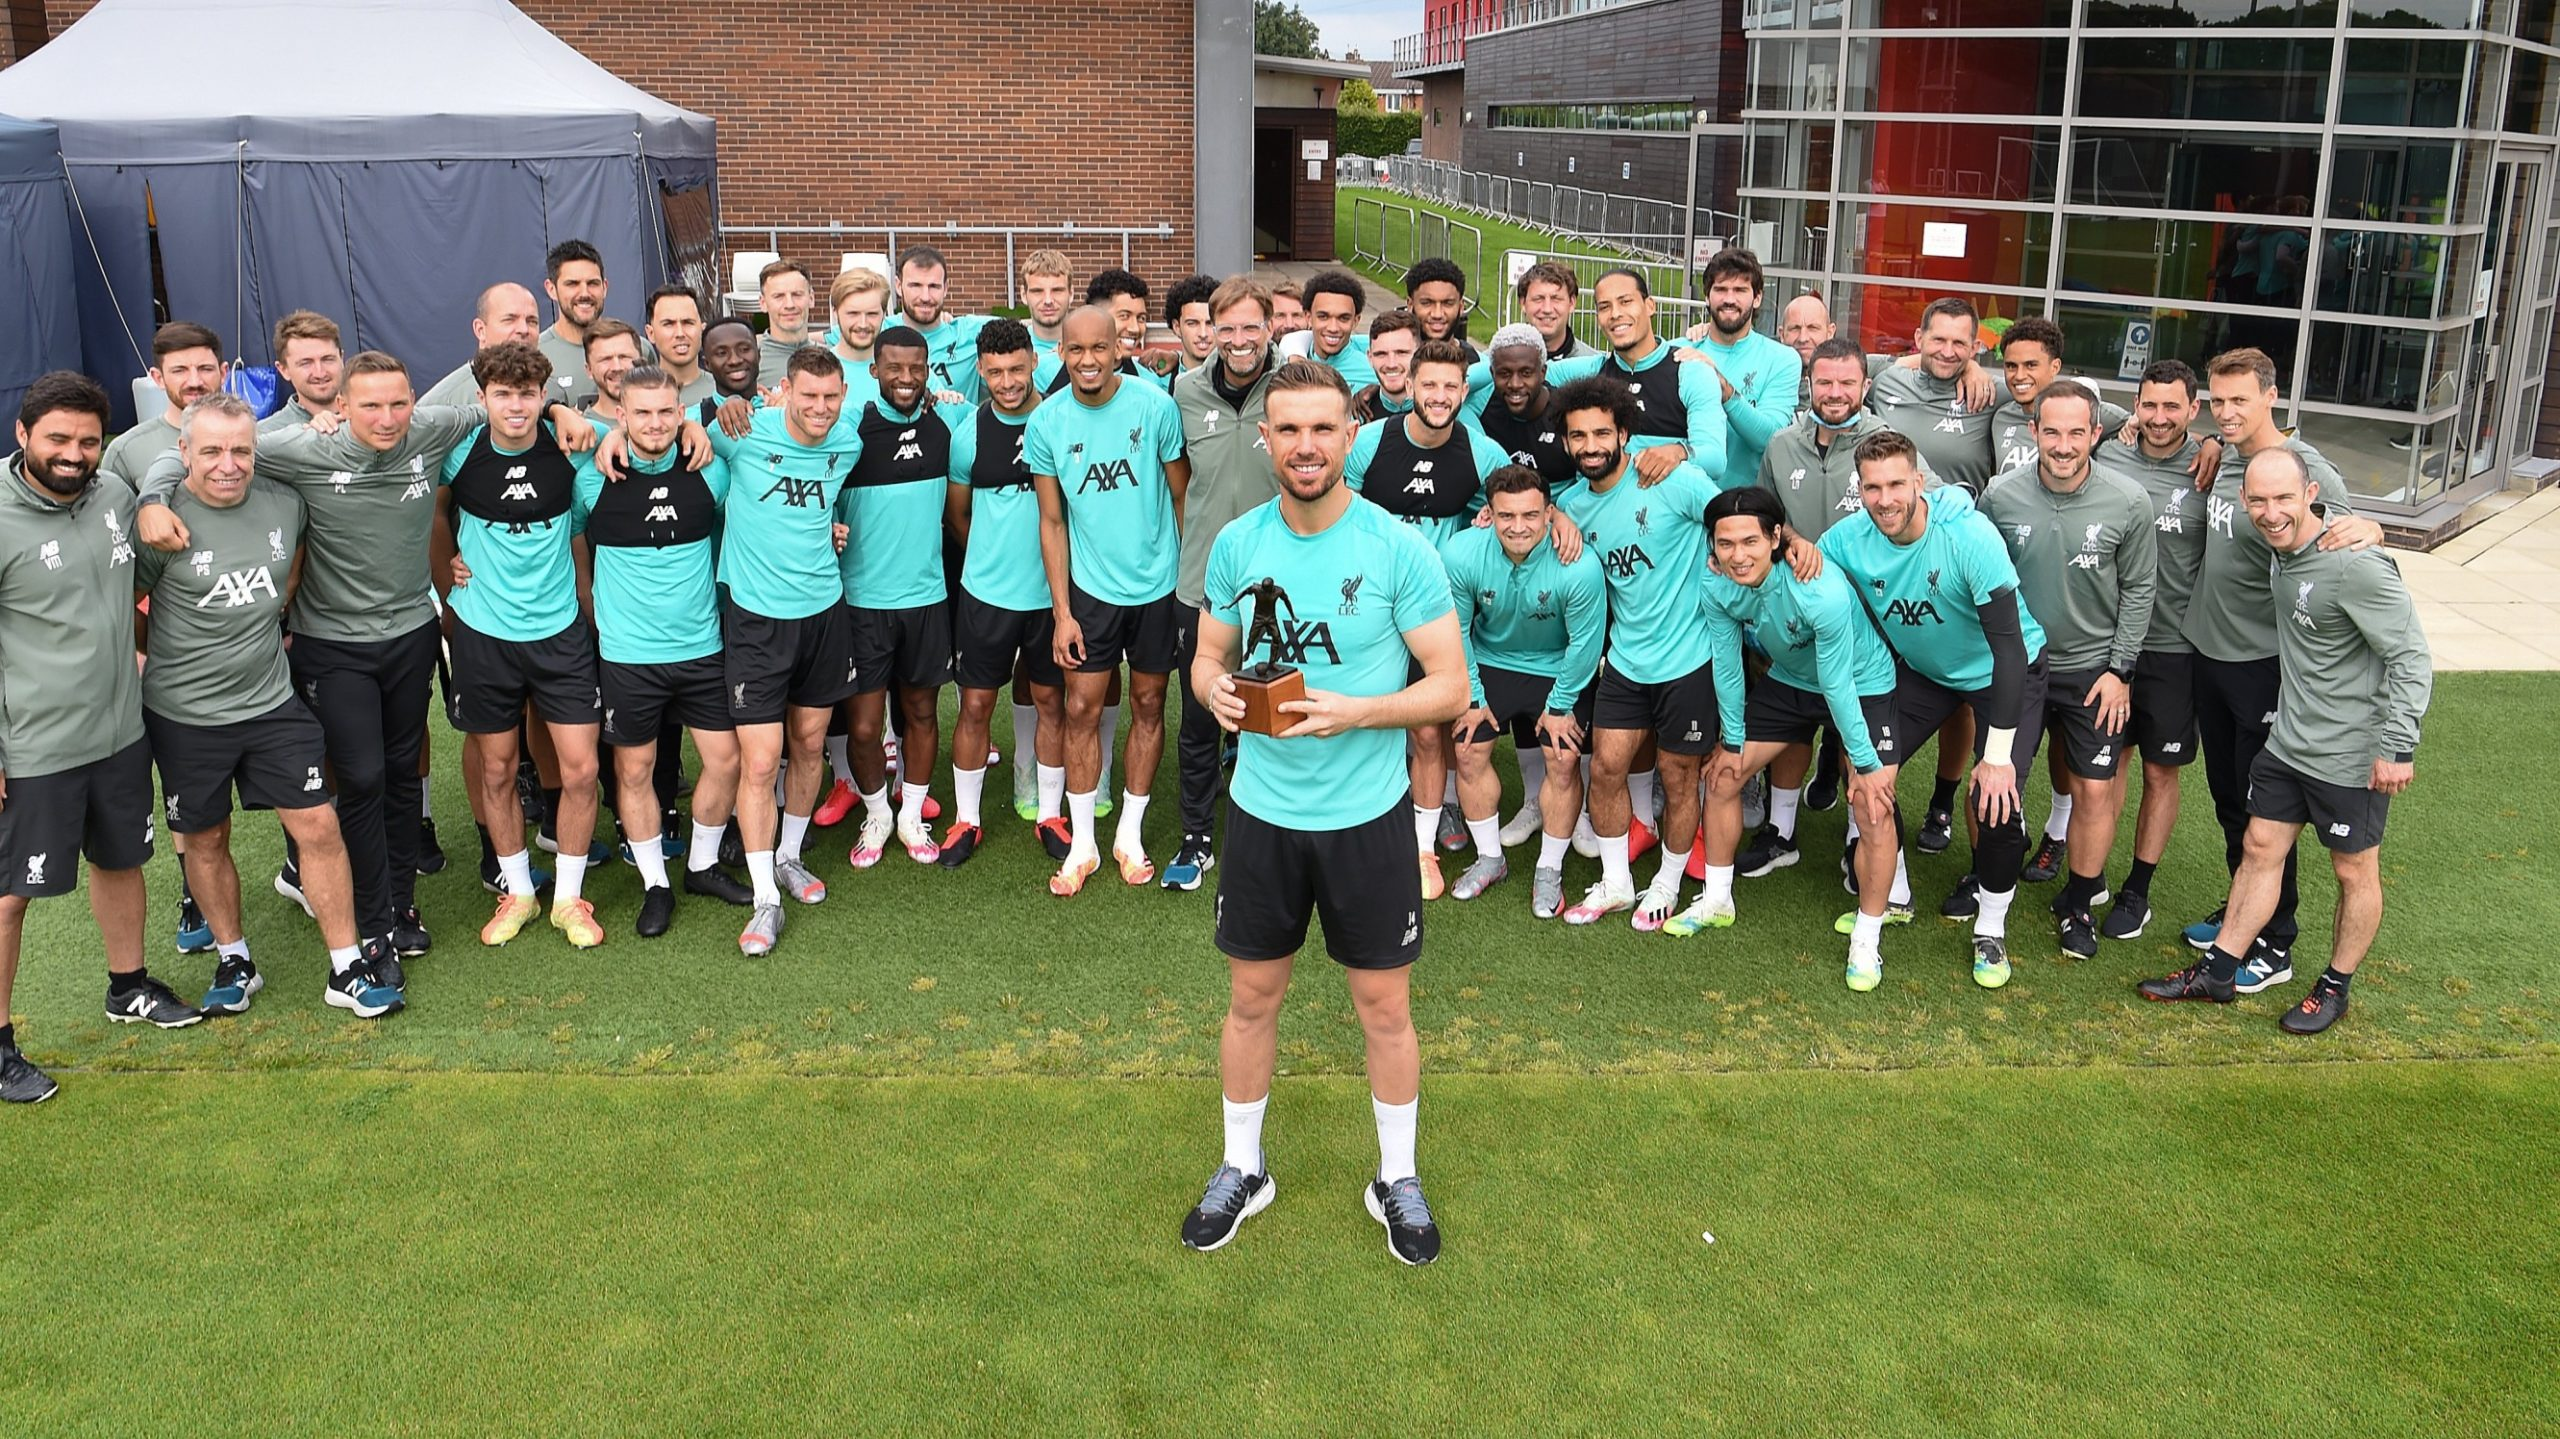 Jordan Henderson with the FWA Player of the Year award with the whole squad.